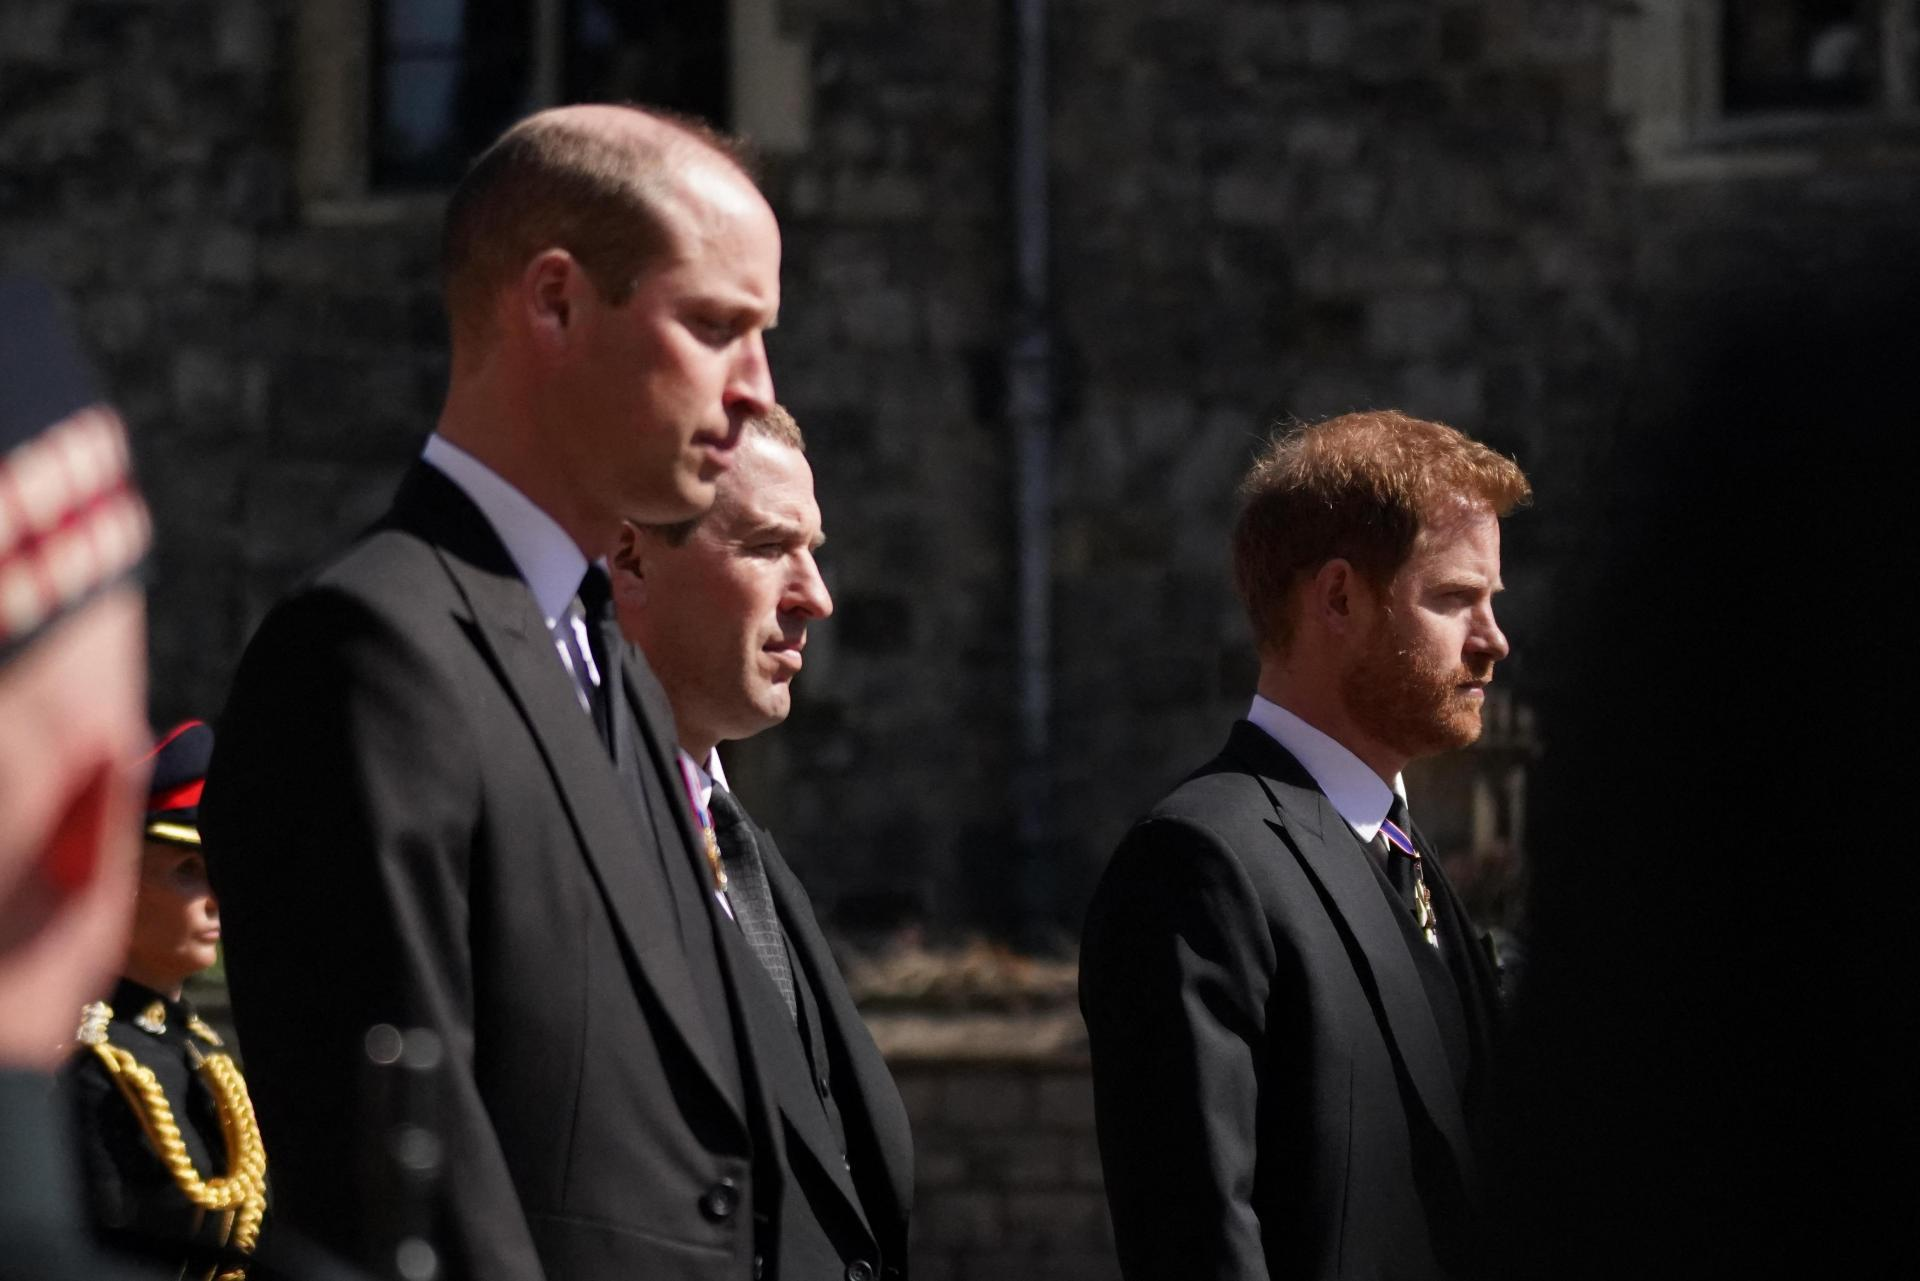 Prince William (left) and Prince Harry (right) attending the service. Photo: Victoria Jones/Pool/AFP.